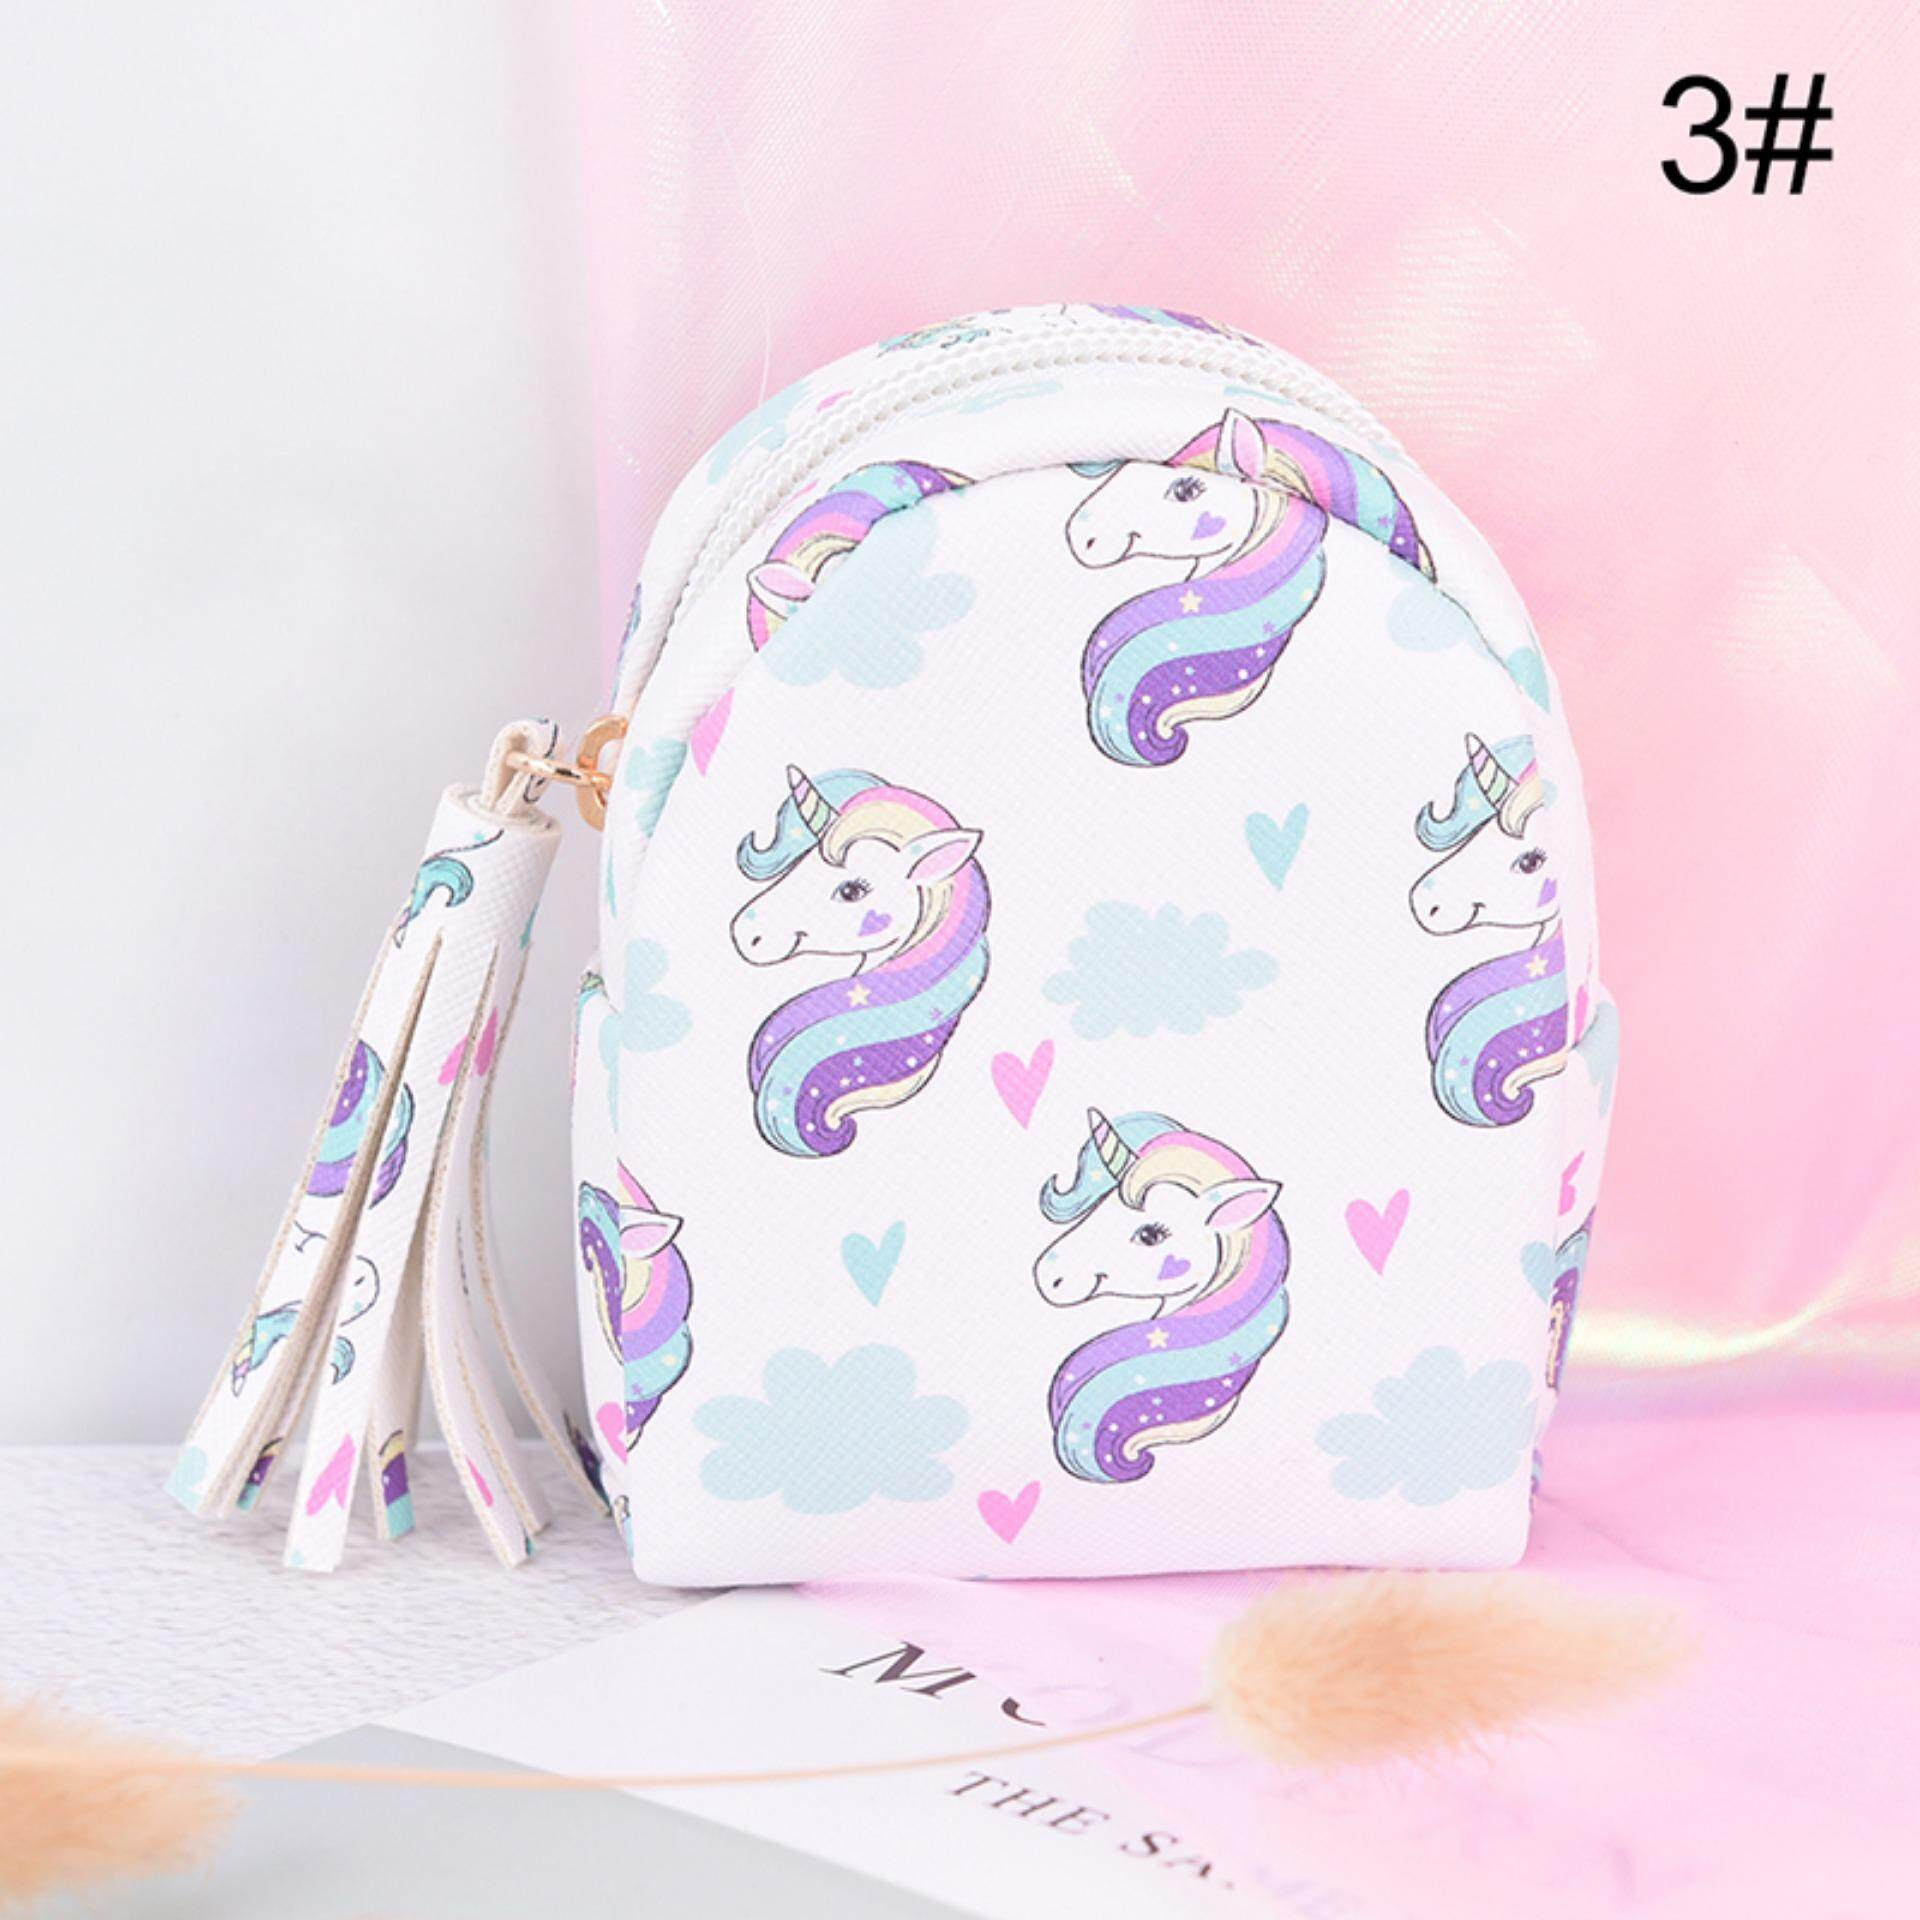 Women Zipper Mini Backpack Unicorn Printed Bag Pu Leather Keychain Coin Purse By The Sunflower Mall.